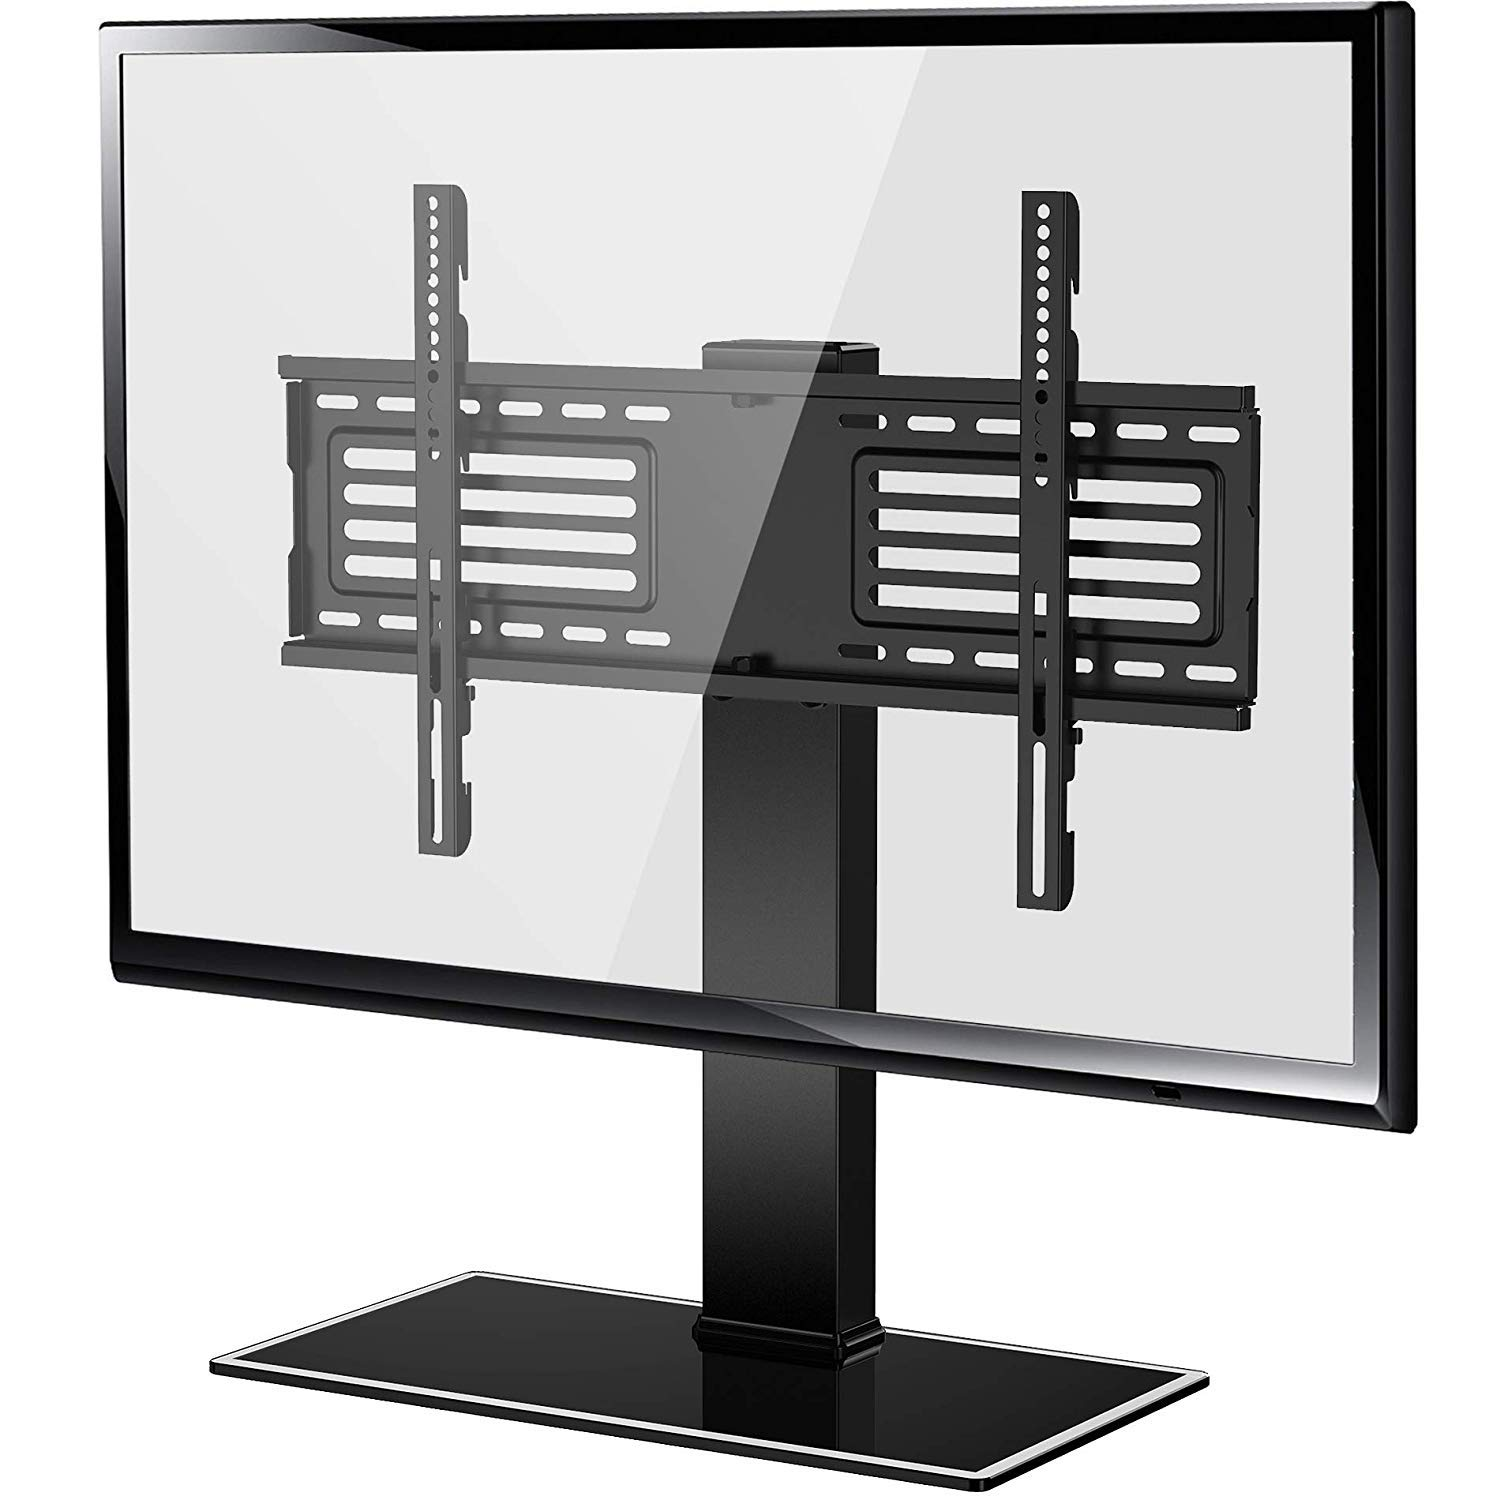 FITUEYES Universal TV Stand with Swivel Mount for 32 inch to 65 inch Flat Screen Tvs Xbox One tv Componentand Height Adjustable Black FTT105001GB by FITUEYES